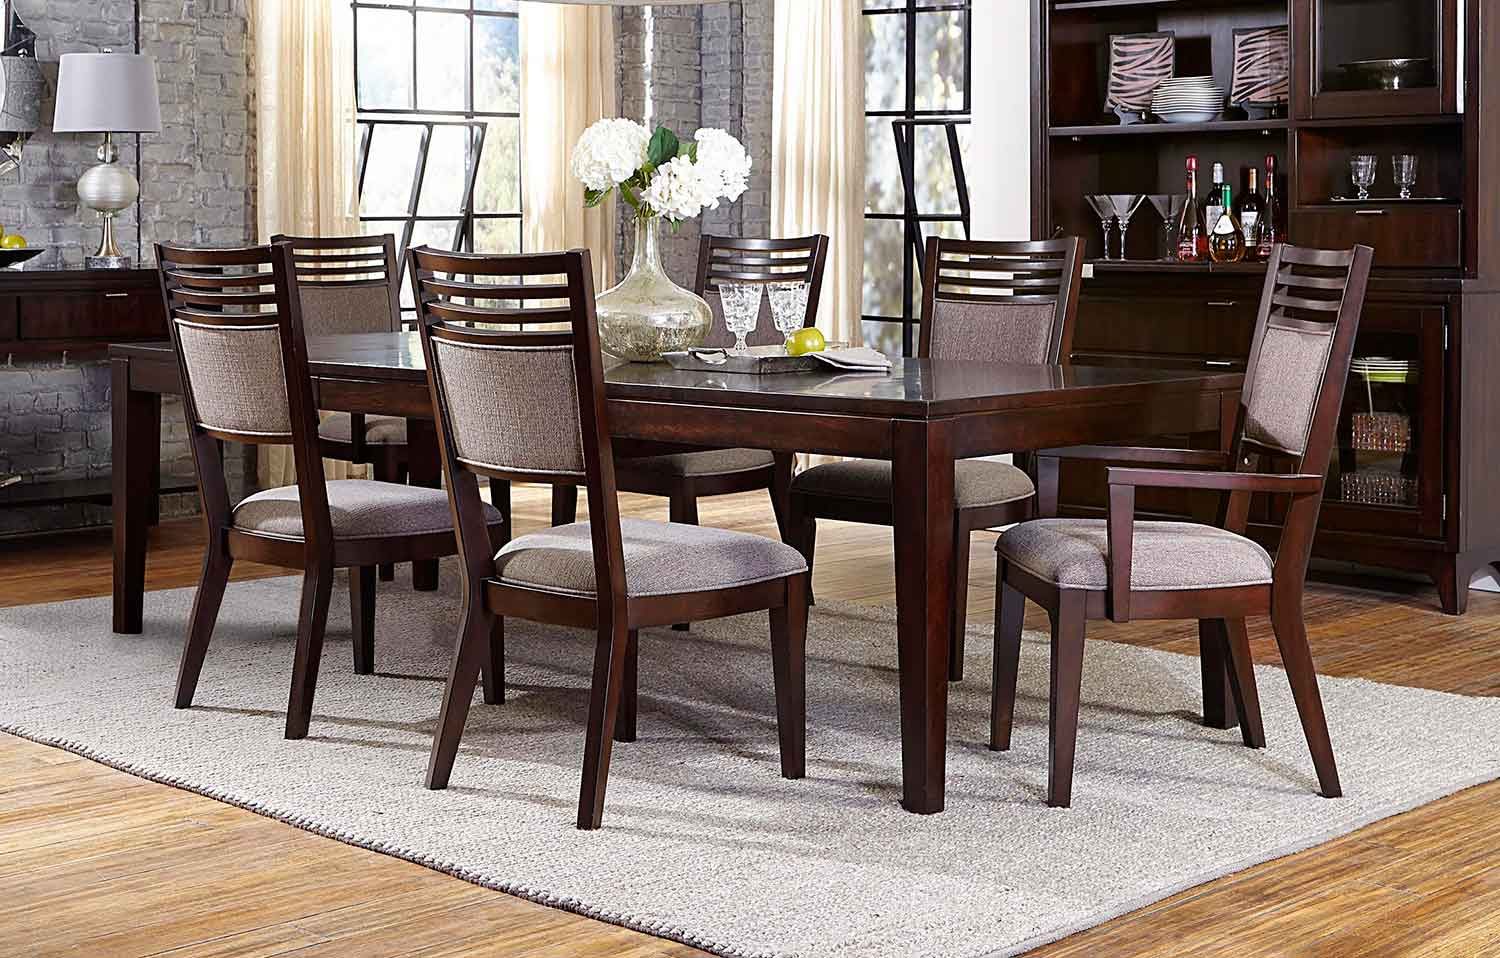 Hillsdale Furniture: Denmark Dining Collection